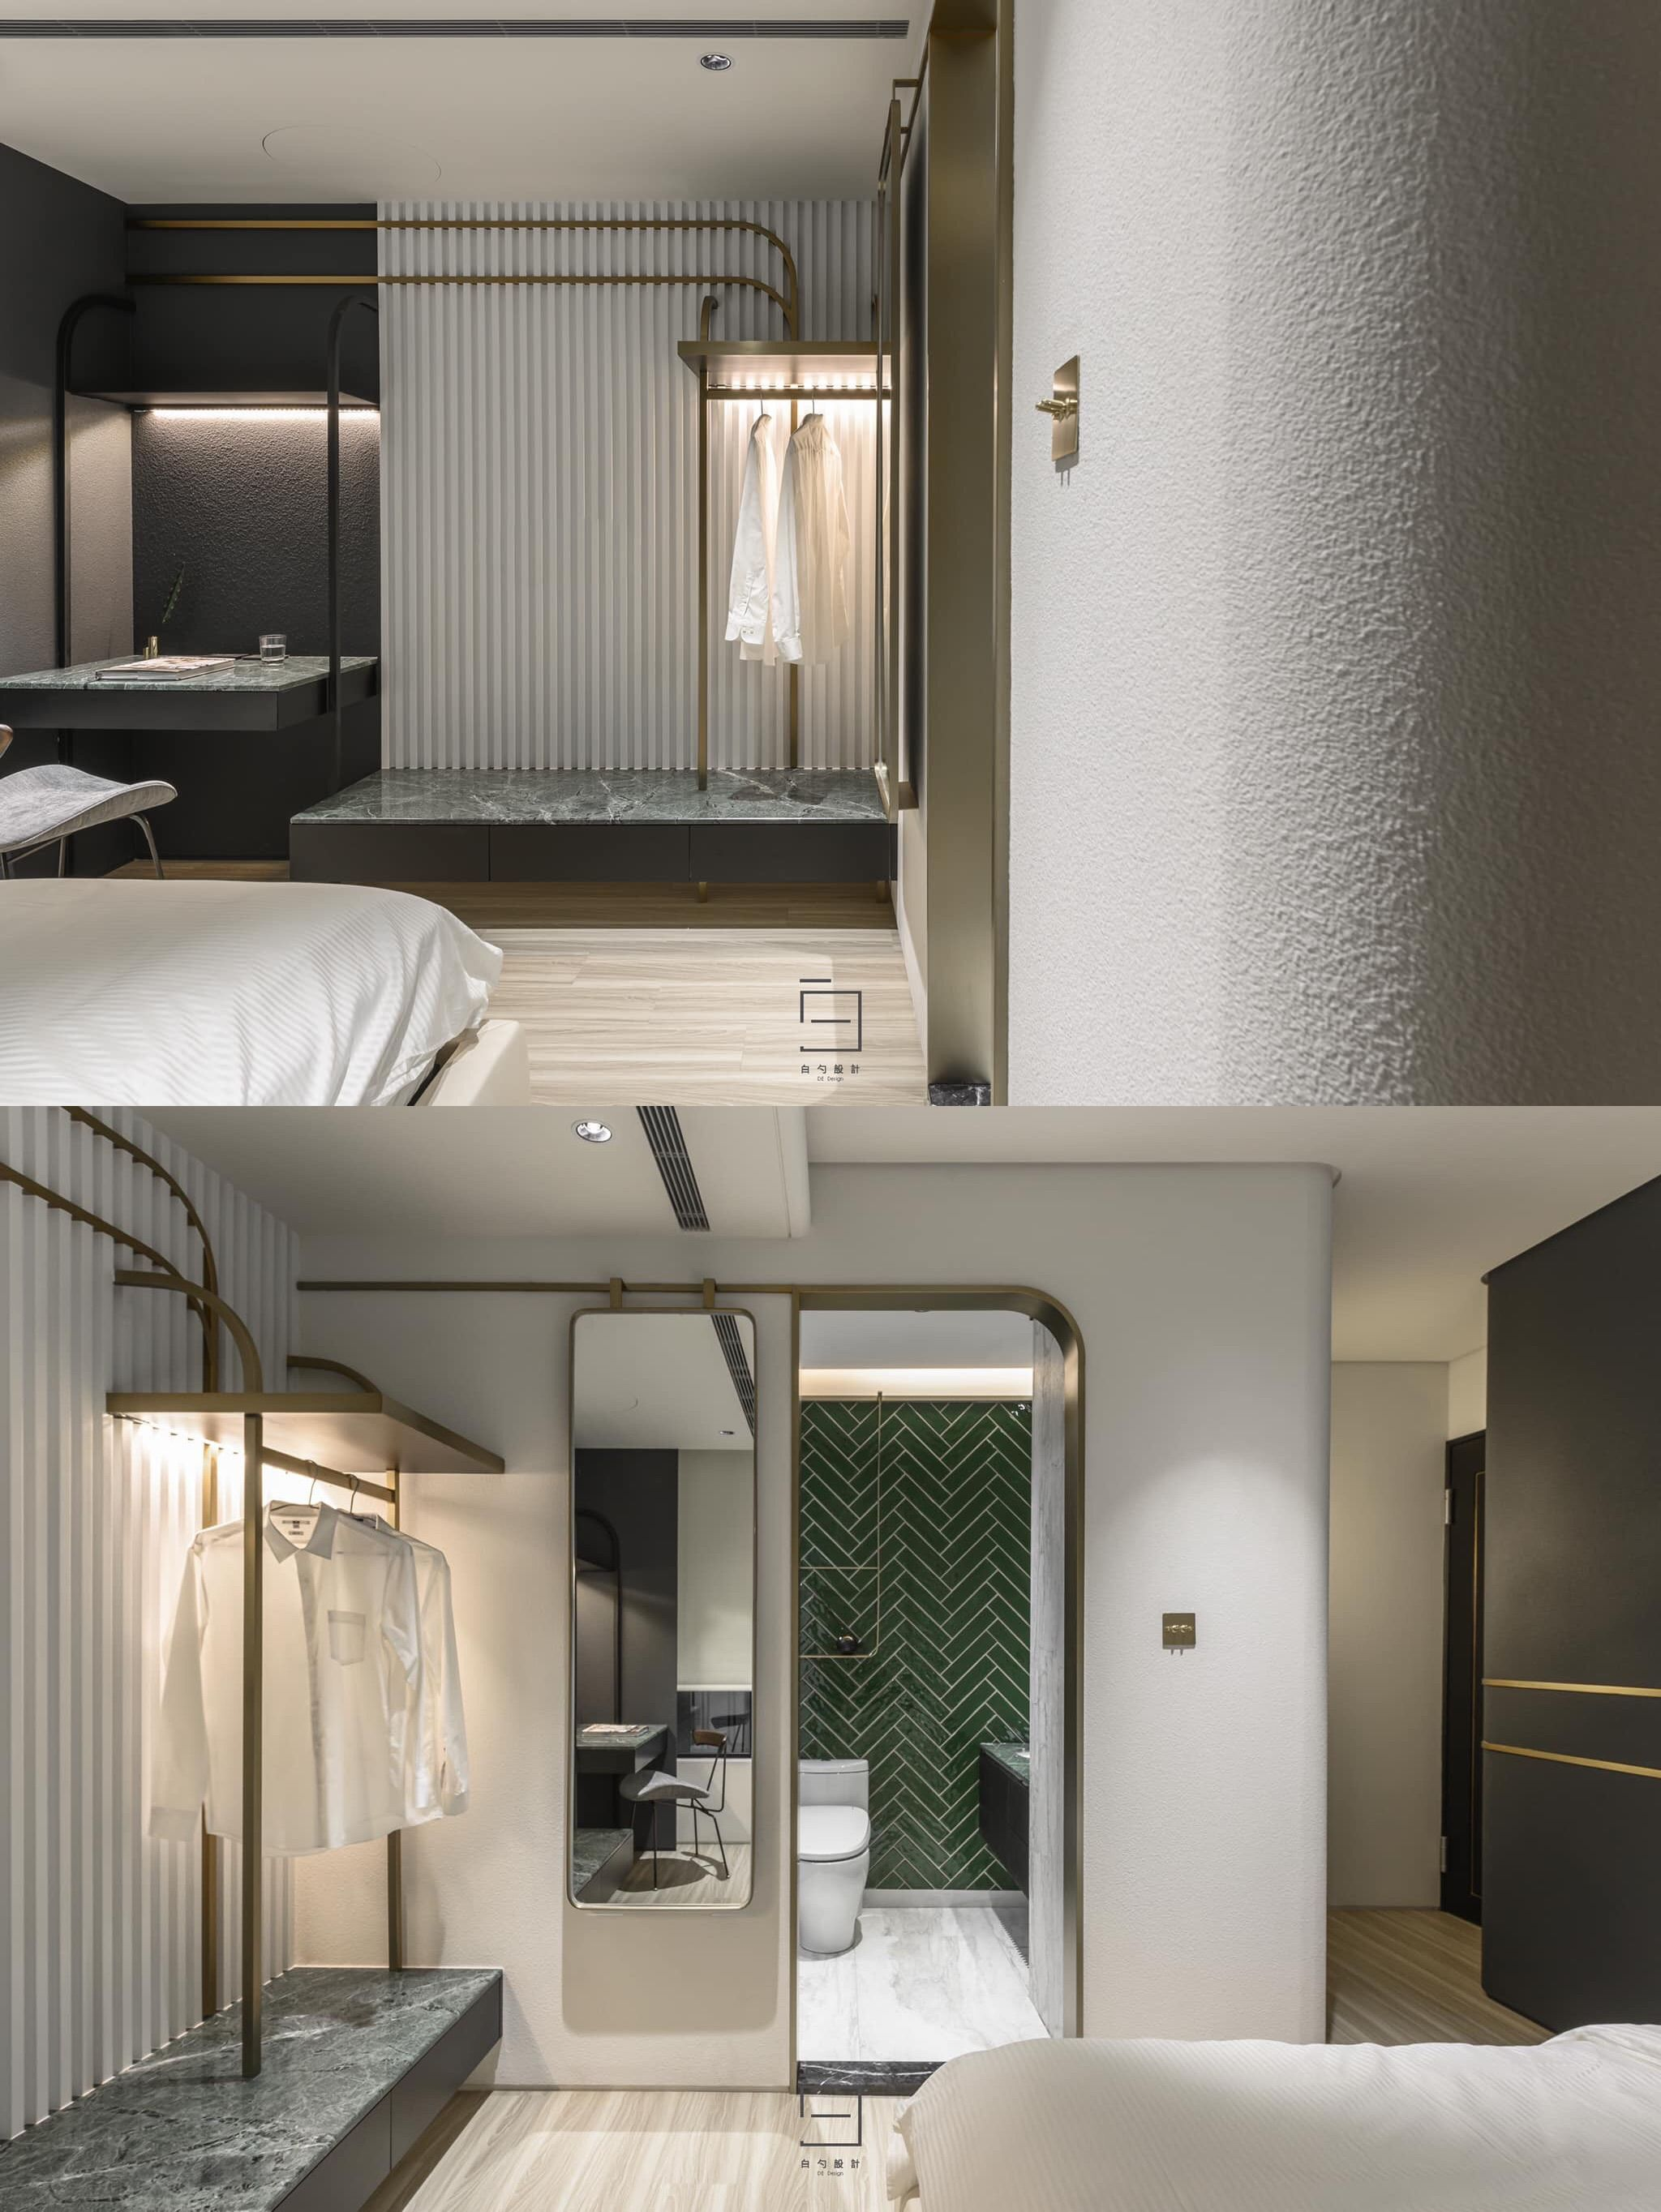 Pin By Mh On 贴图 Hotel Room Design Small Hotel Room Hotel Bedroom Design